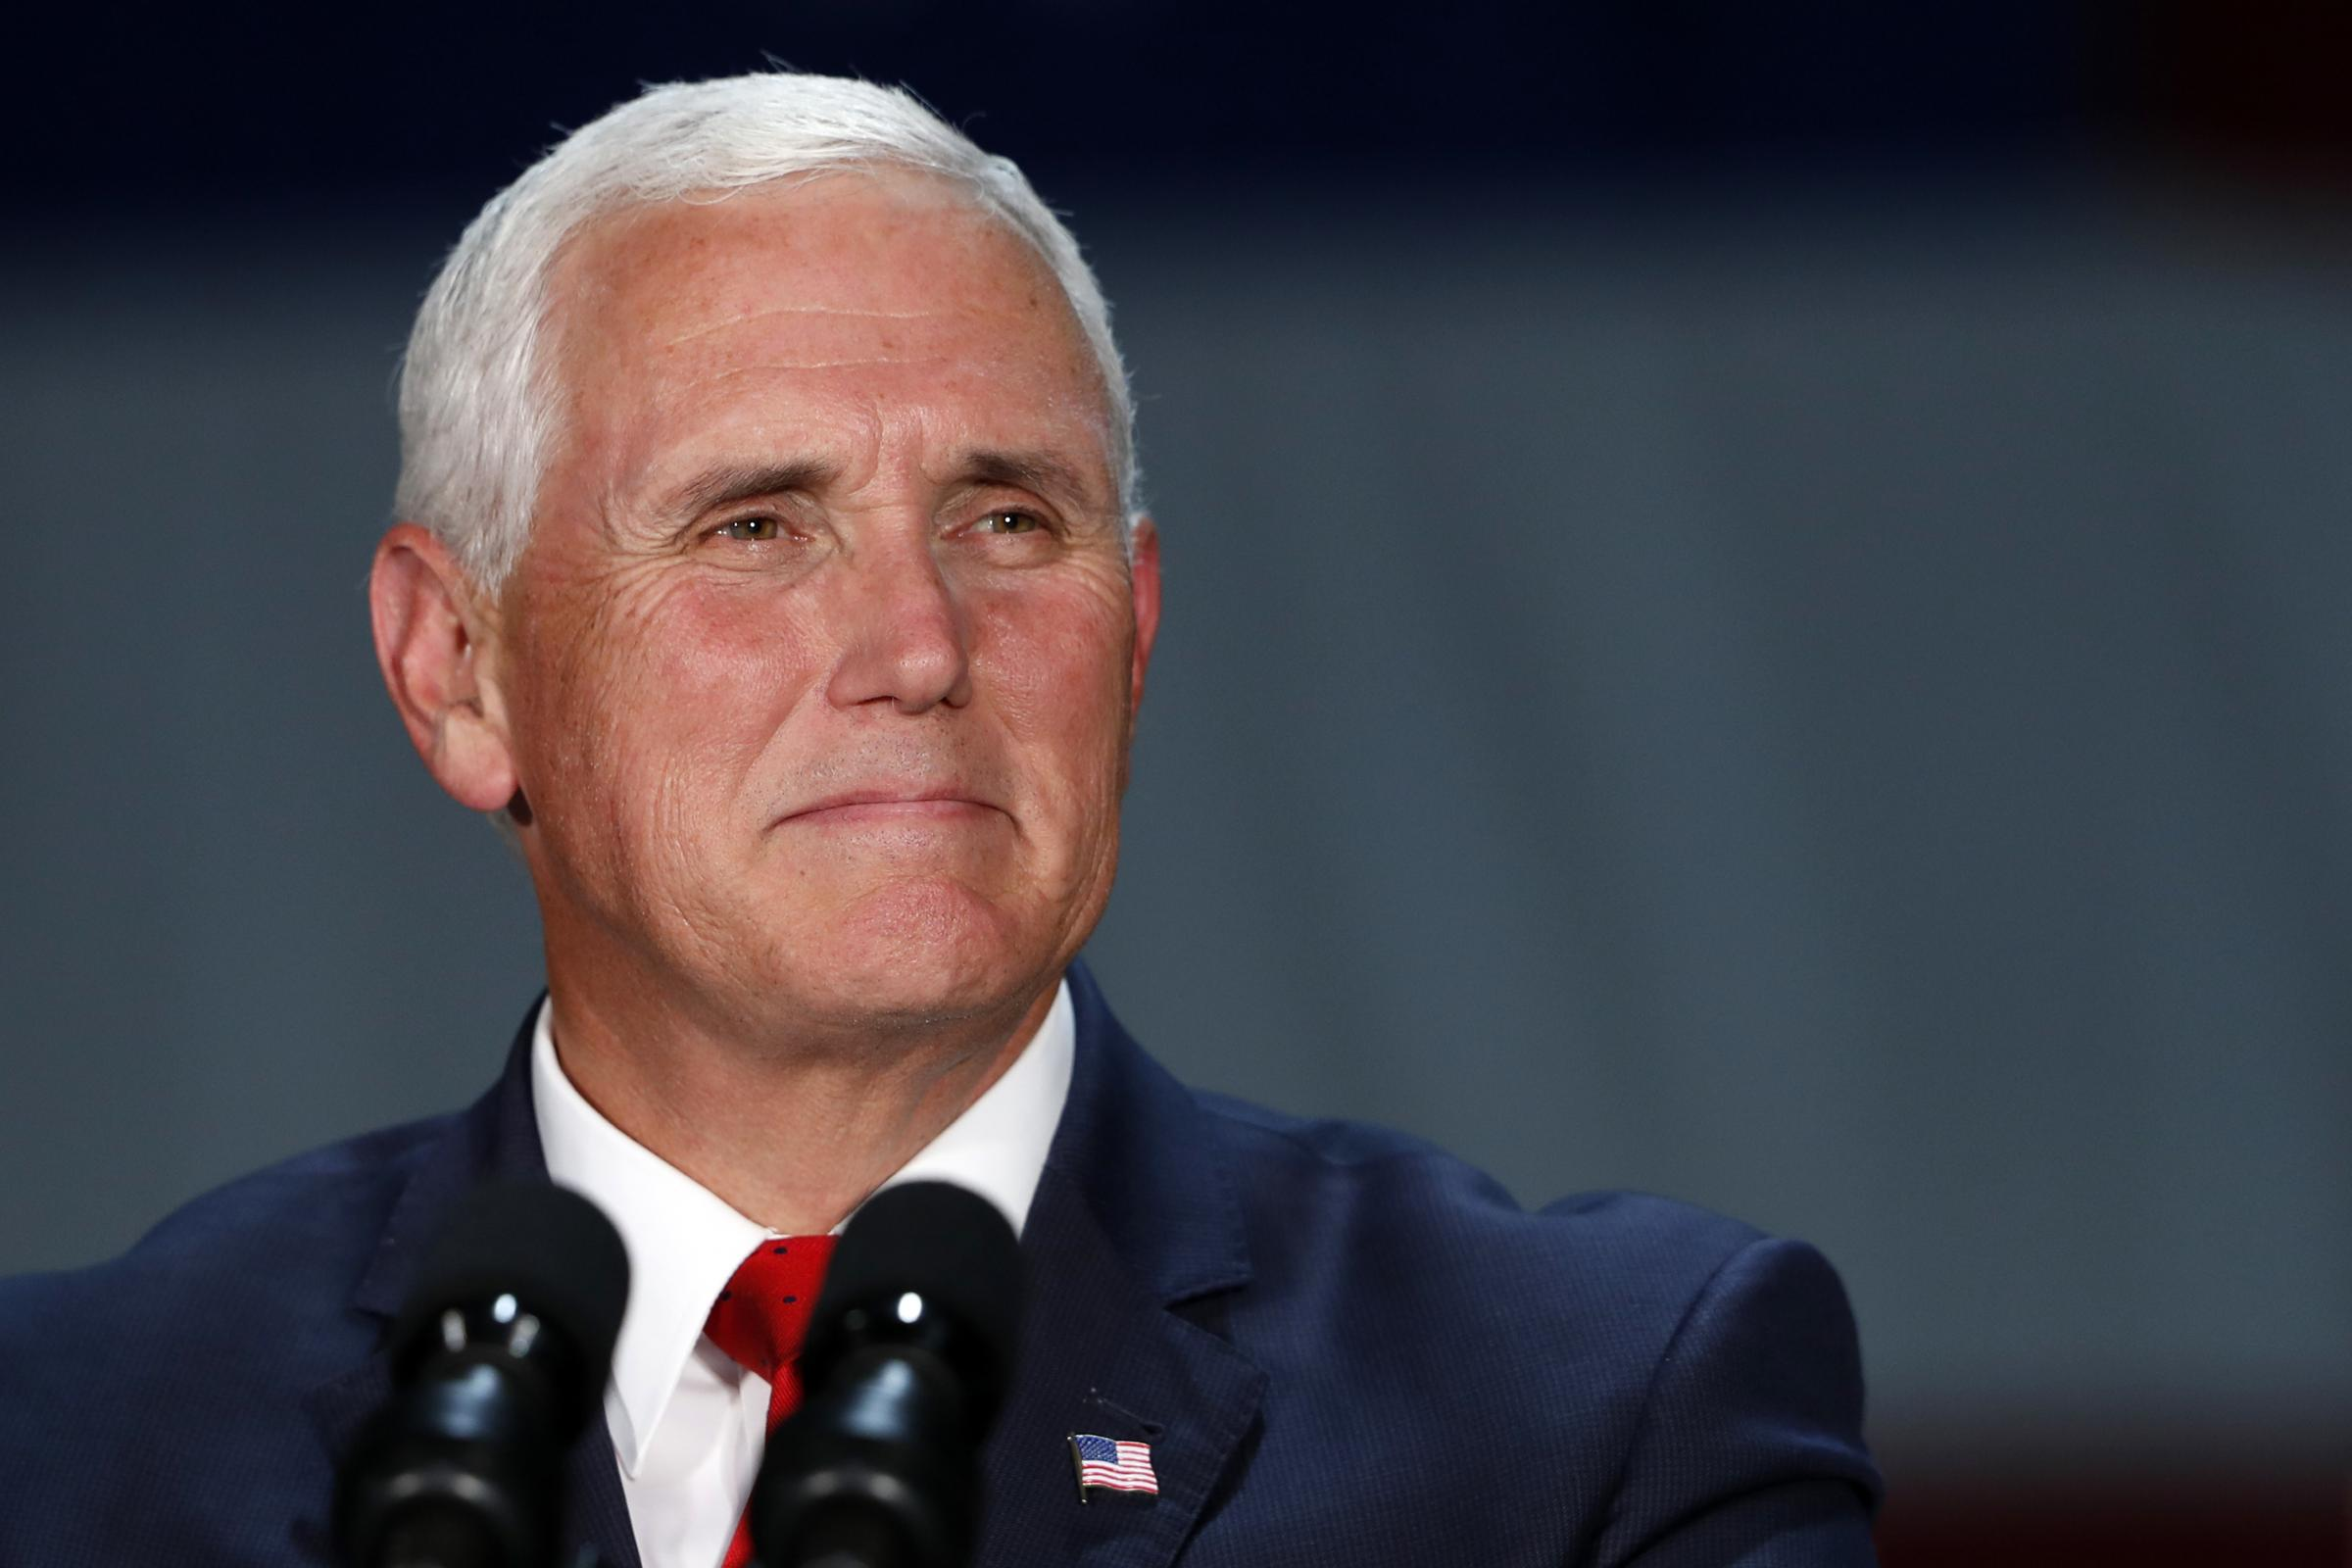 Pence: I'm confident no one on my staff wrote the NYT column